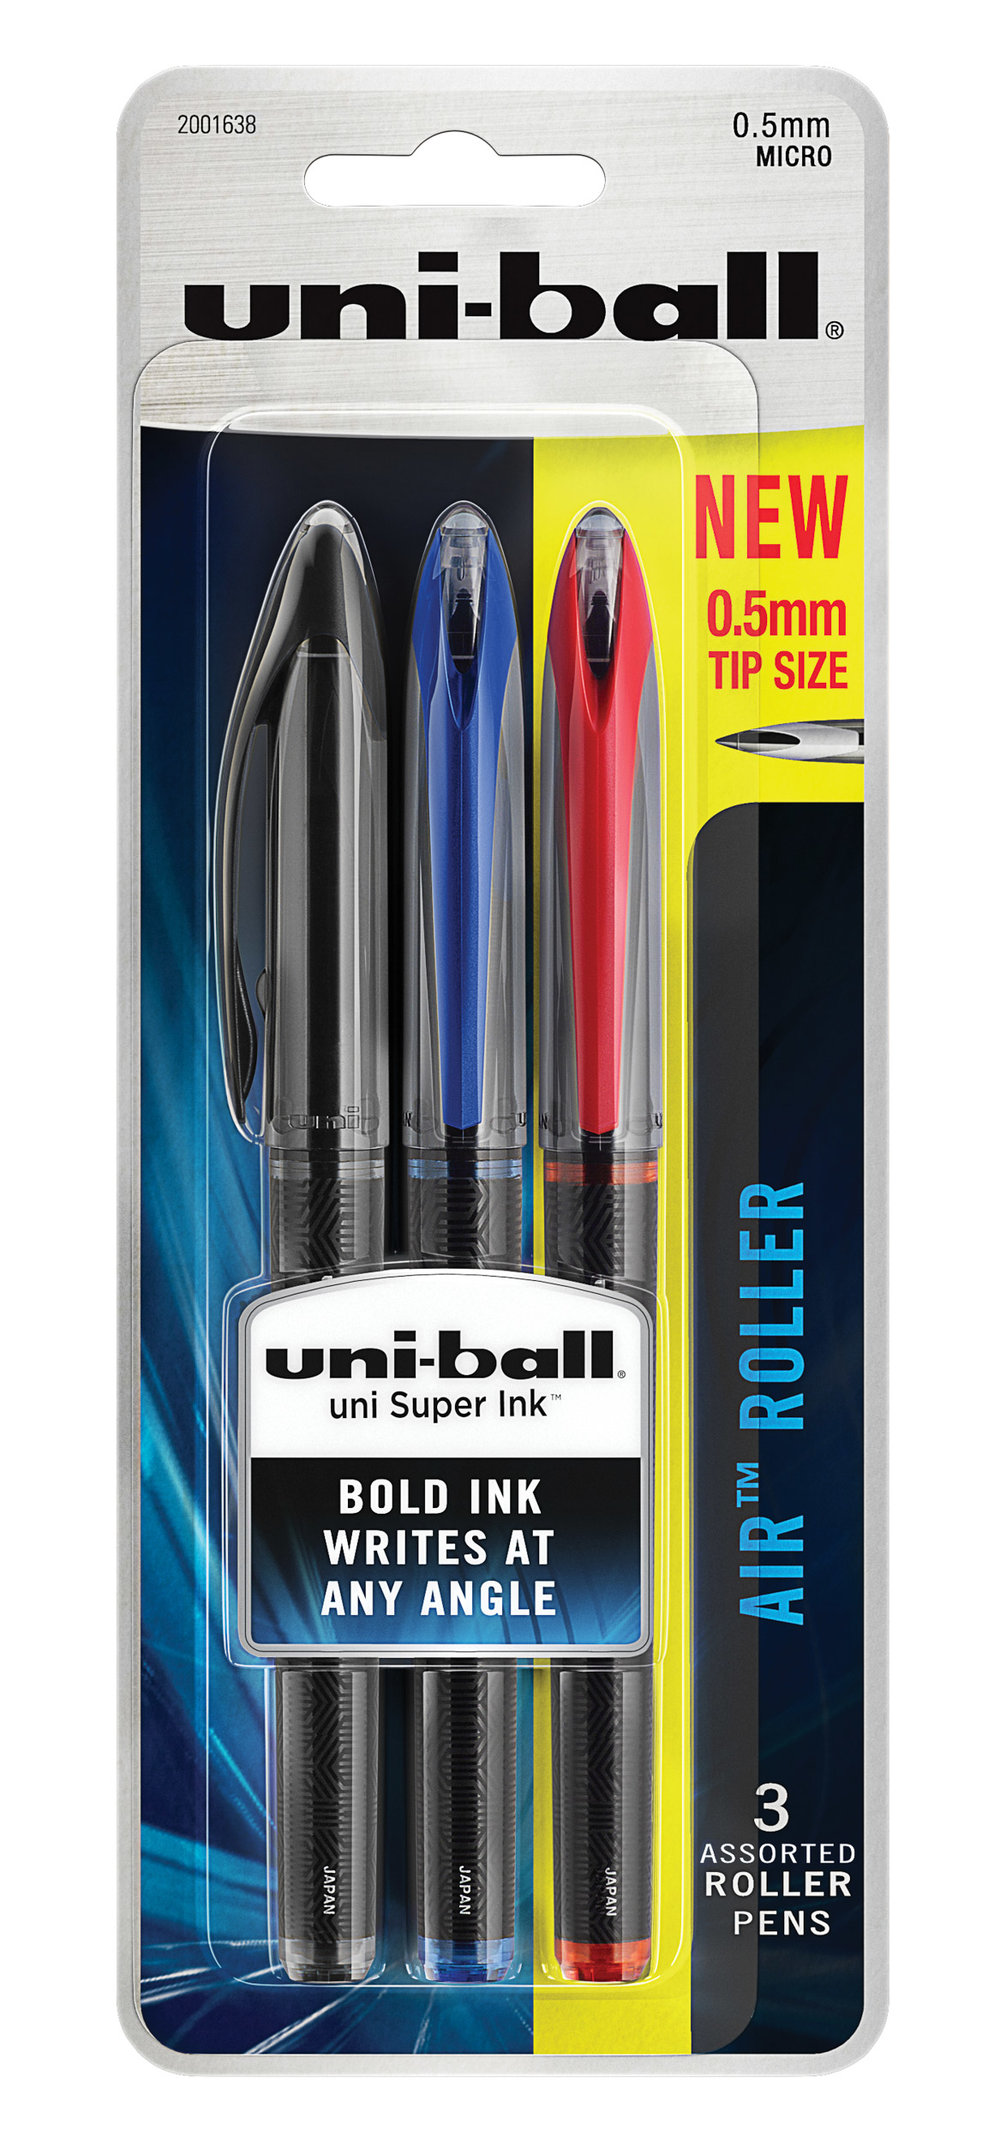 Uniball_Assorted_CMYK-2.jpg